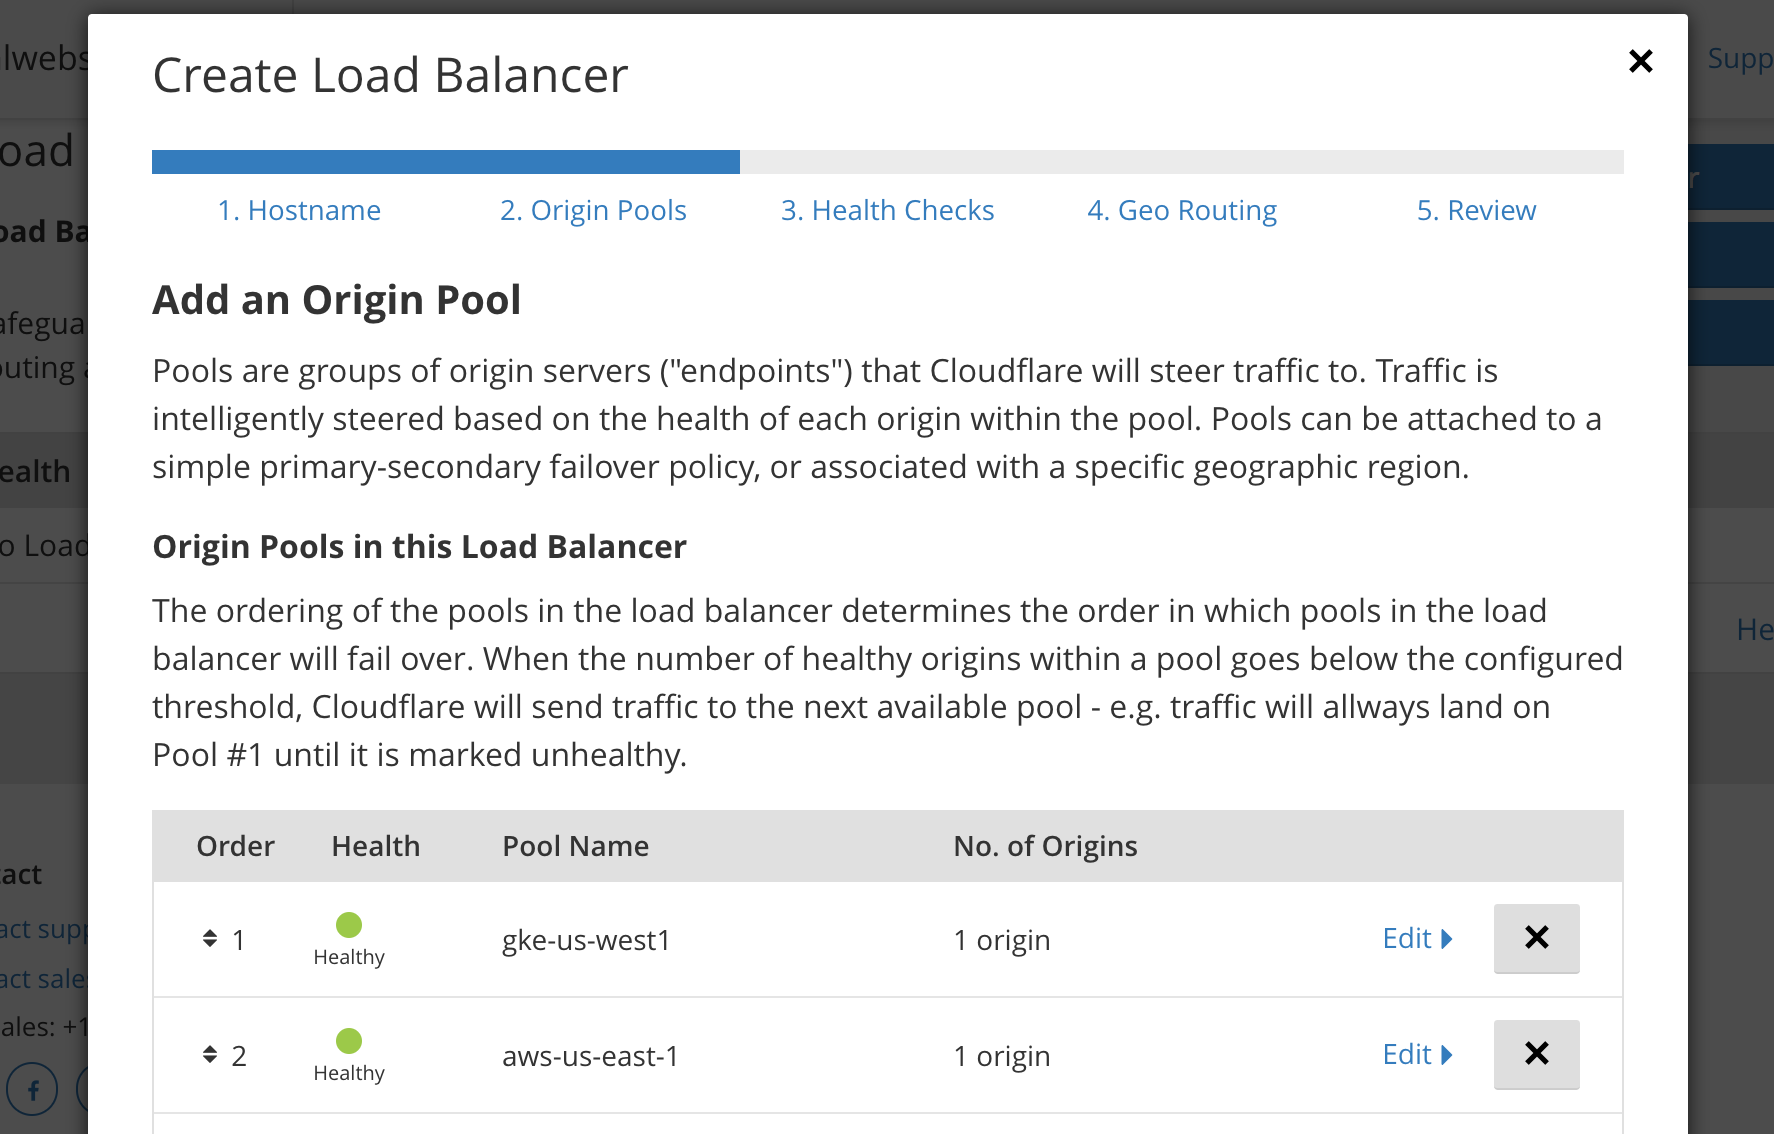 Old URL: https://support.cloudflare.com/hc/article_attachments/115003974451/CF_LB_Failover.png Article IDs: 115003384591 | Using Kubernetes on GKE and AWS with Cloudflare Load Balancer